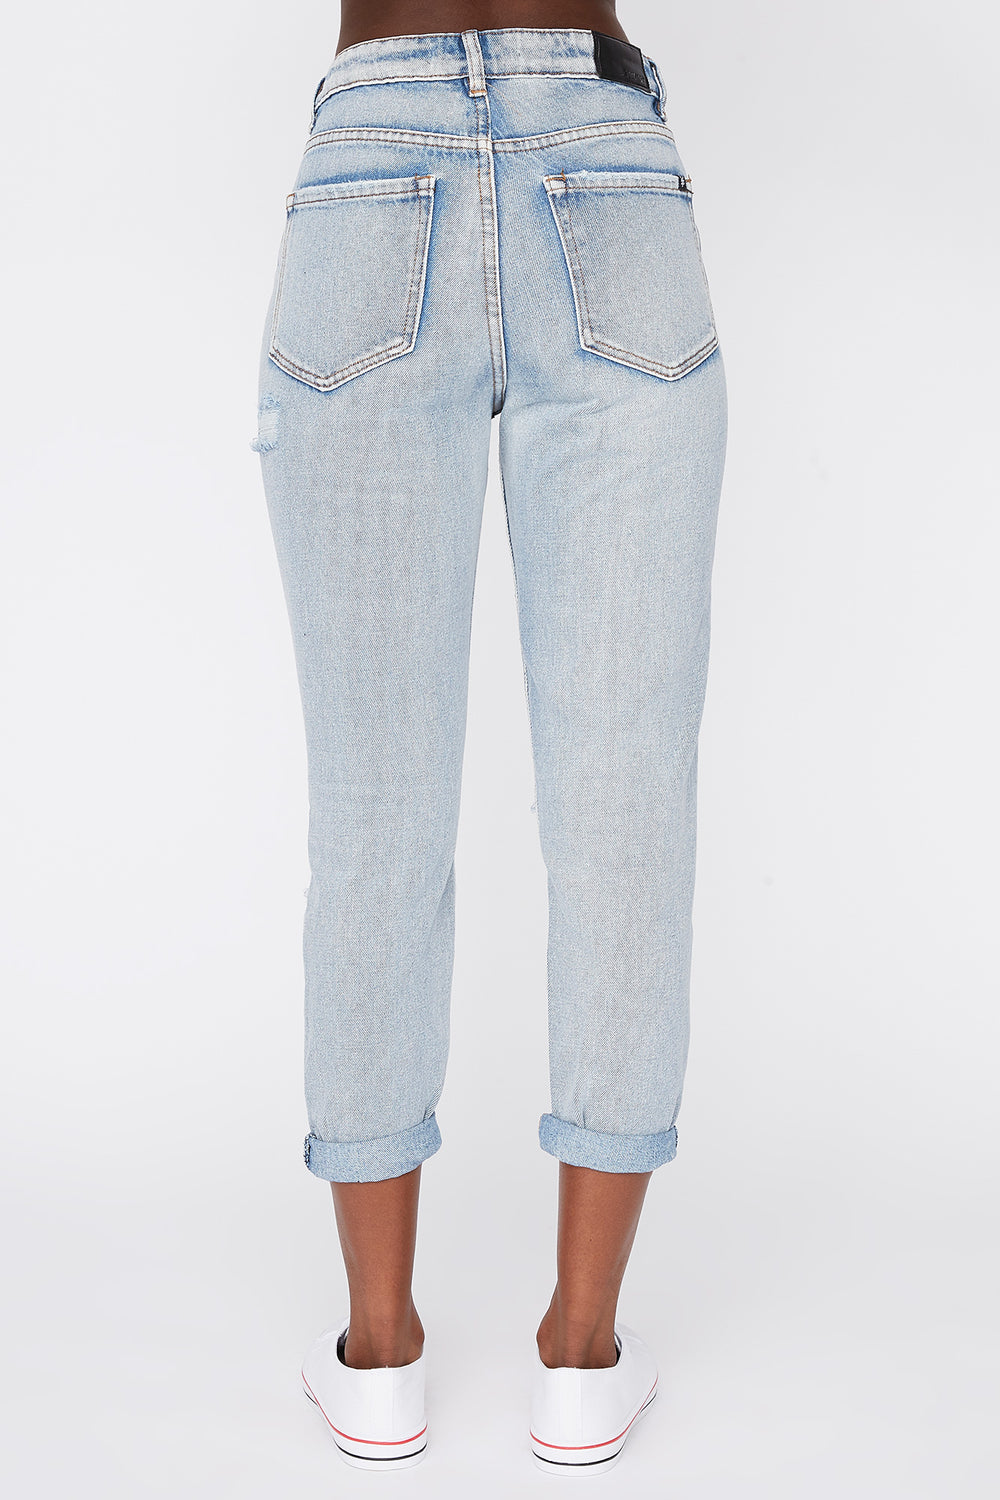 Zoo York Womens Cropped Mom Jeans Sky Blue